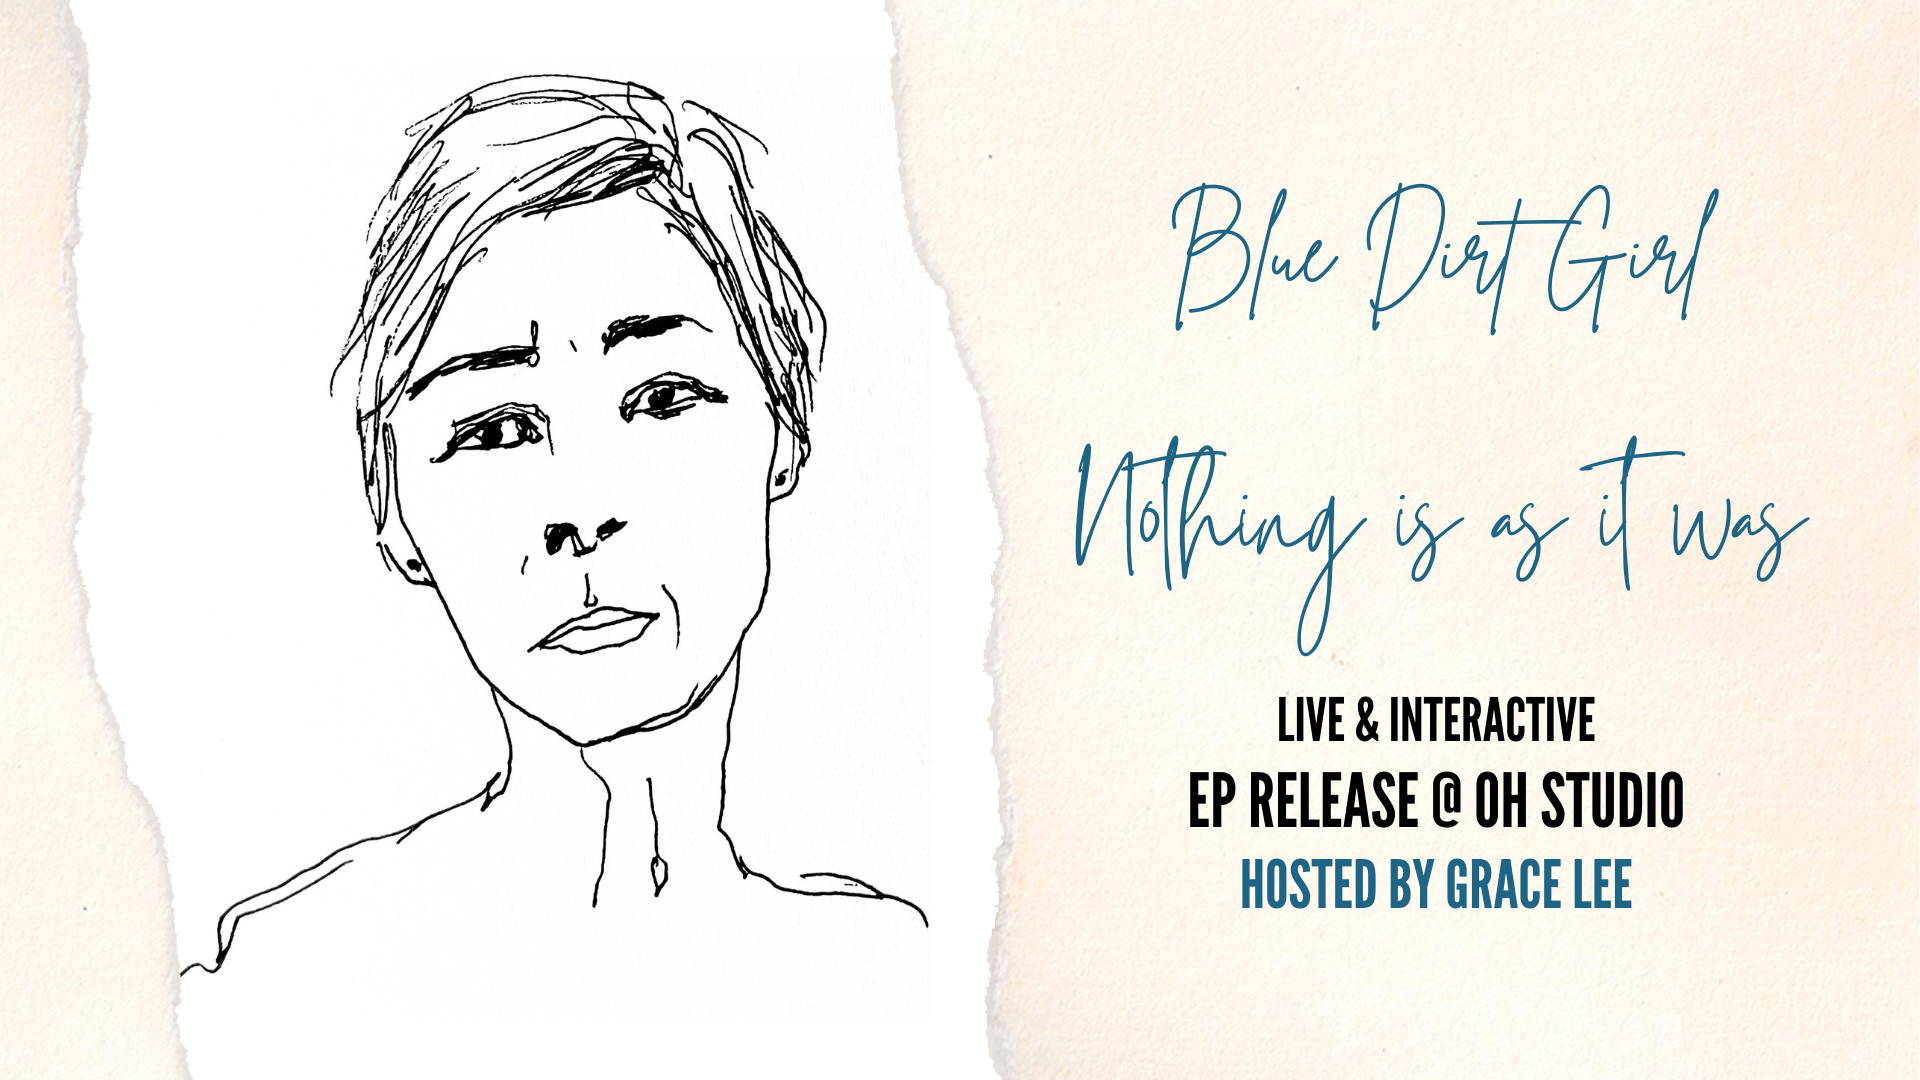 Blue Dirt Girl Grace Lee OH Studio EP release event kiki yee sketch 2021